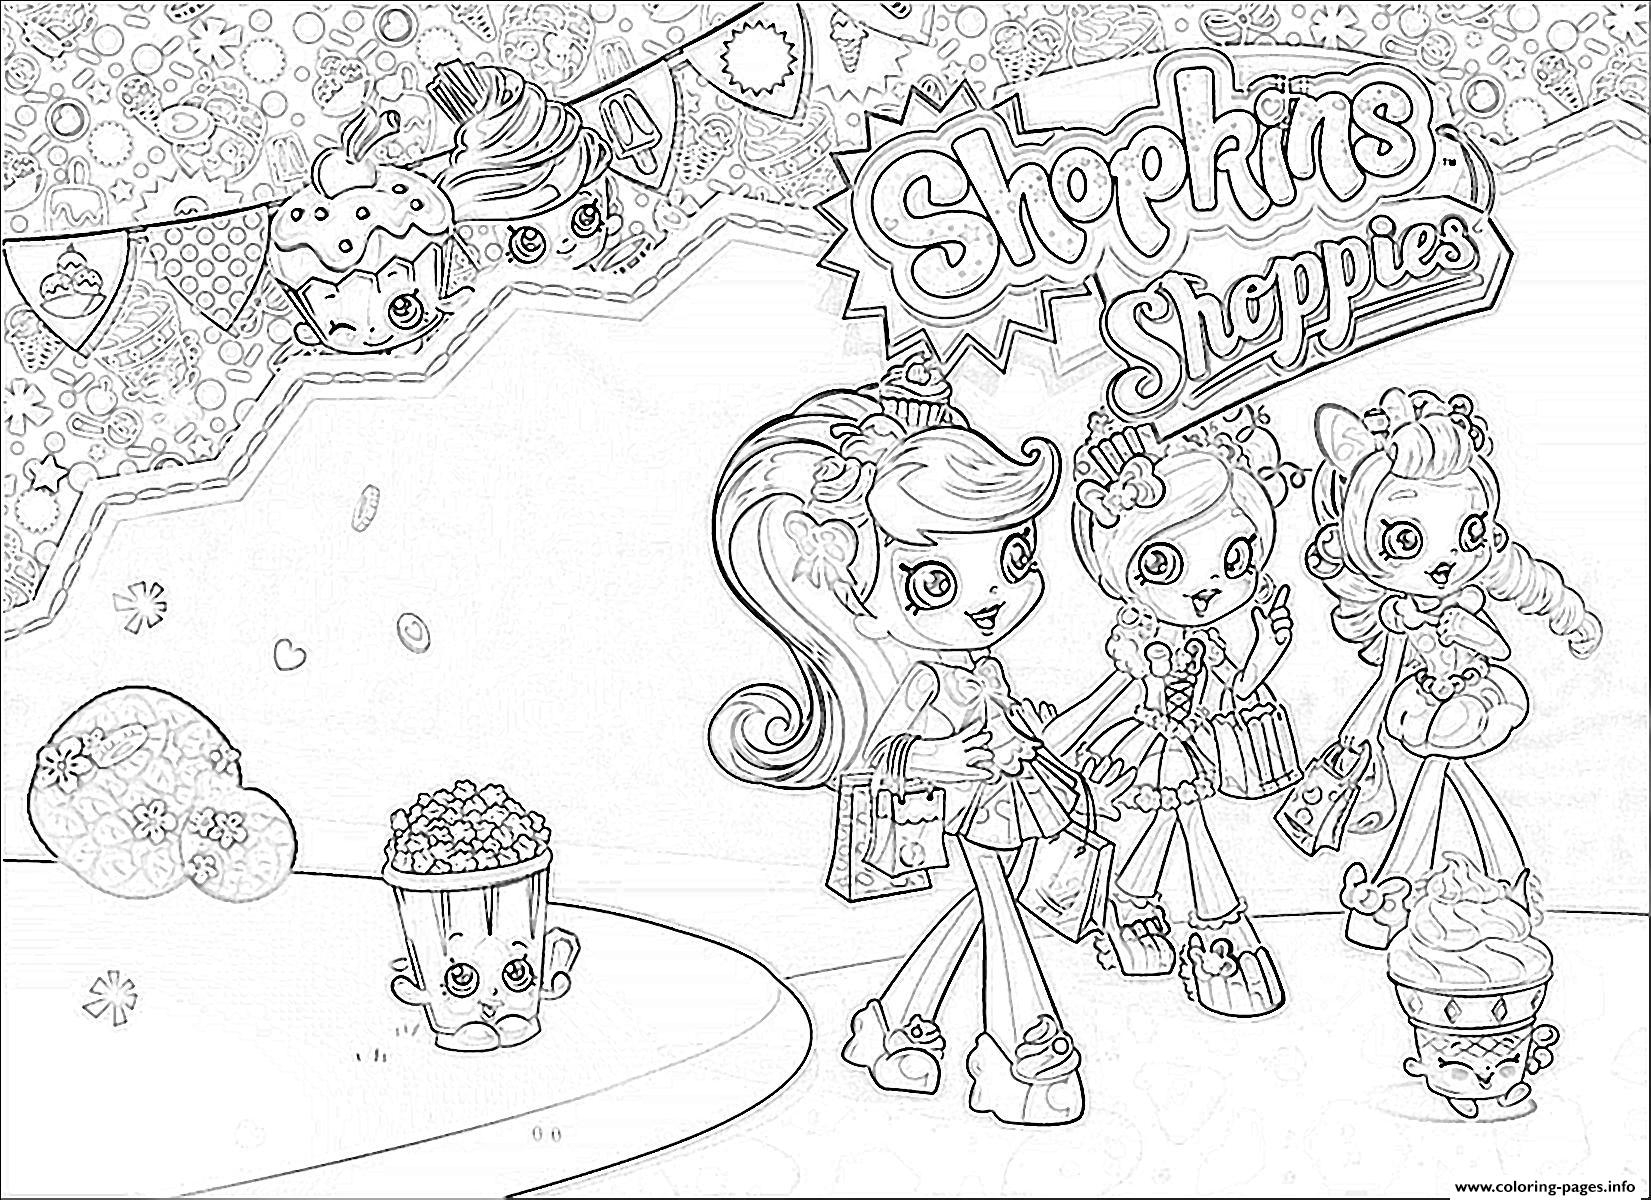 shoppies coloring pages - shopkins shoppies girls printable coloring pages book